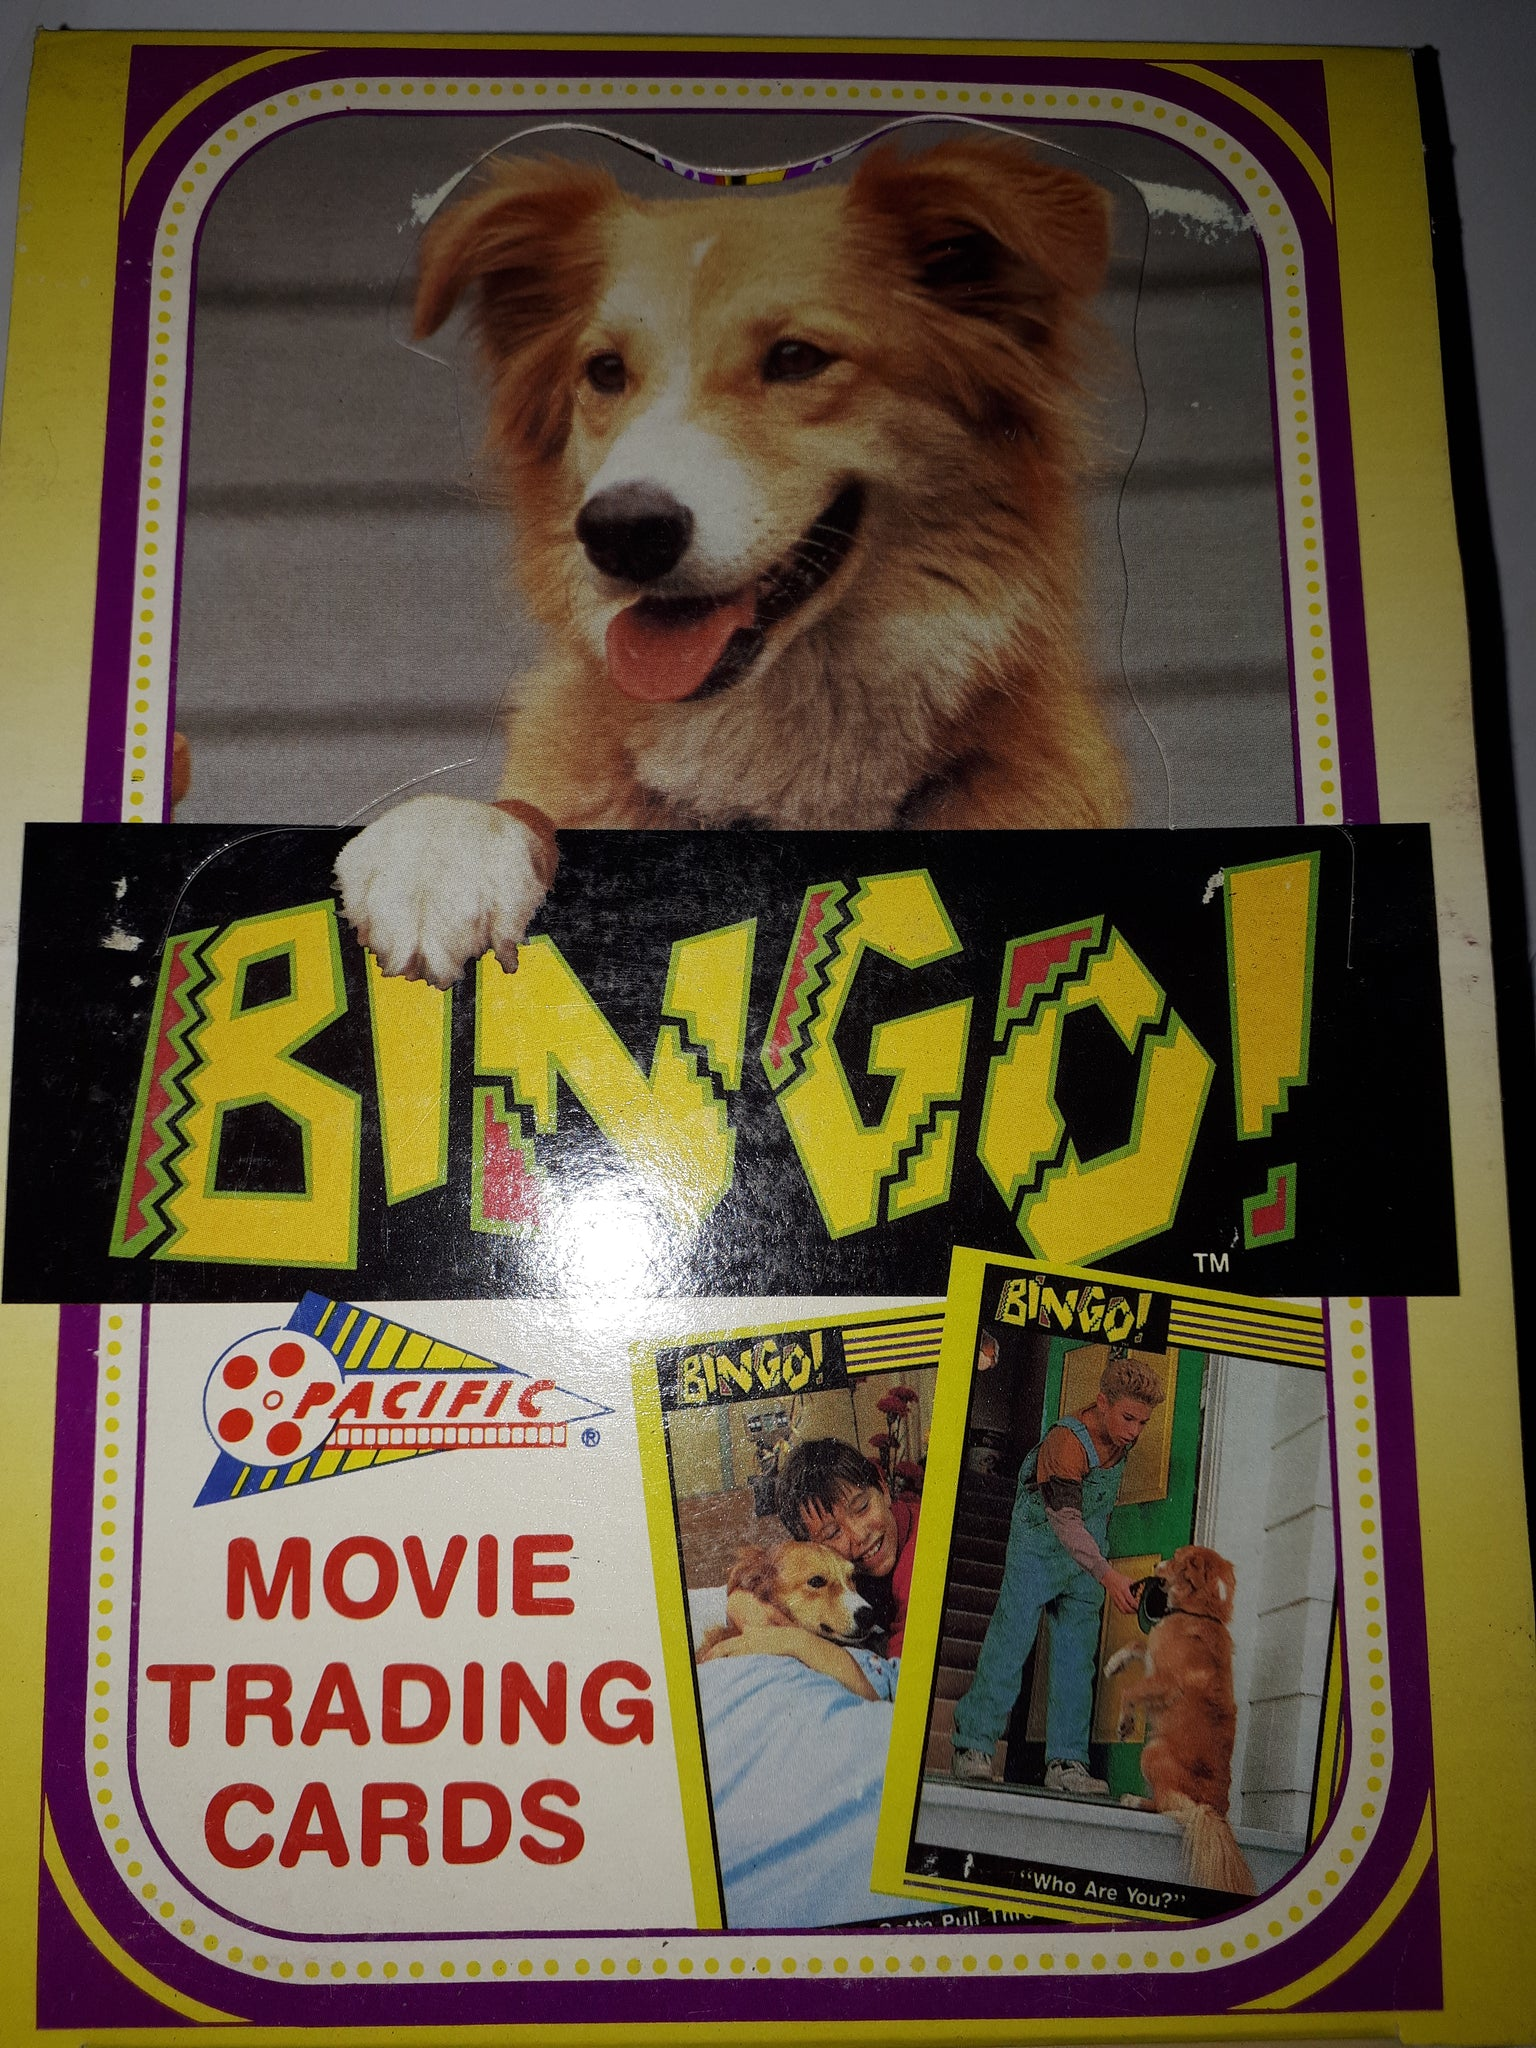 1991 Bingo Movie Trading Card Box 36 Packs 10 Cards In Each Pack By Pacific